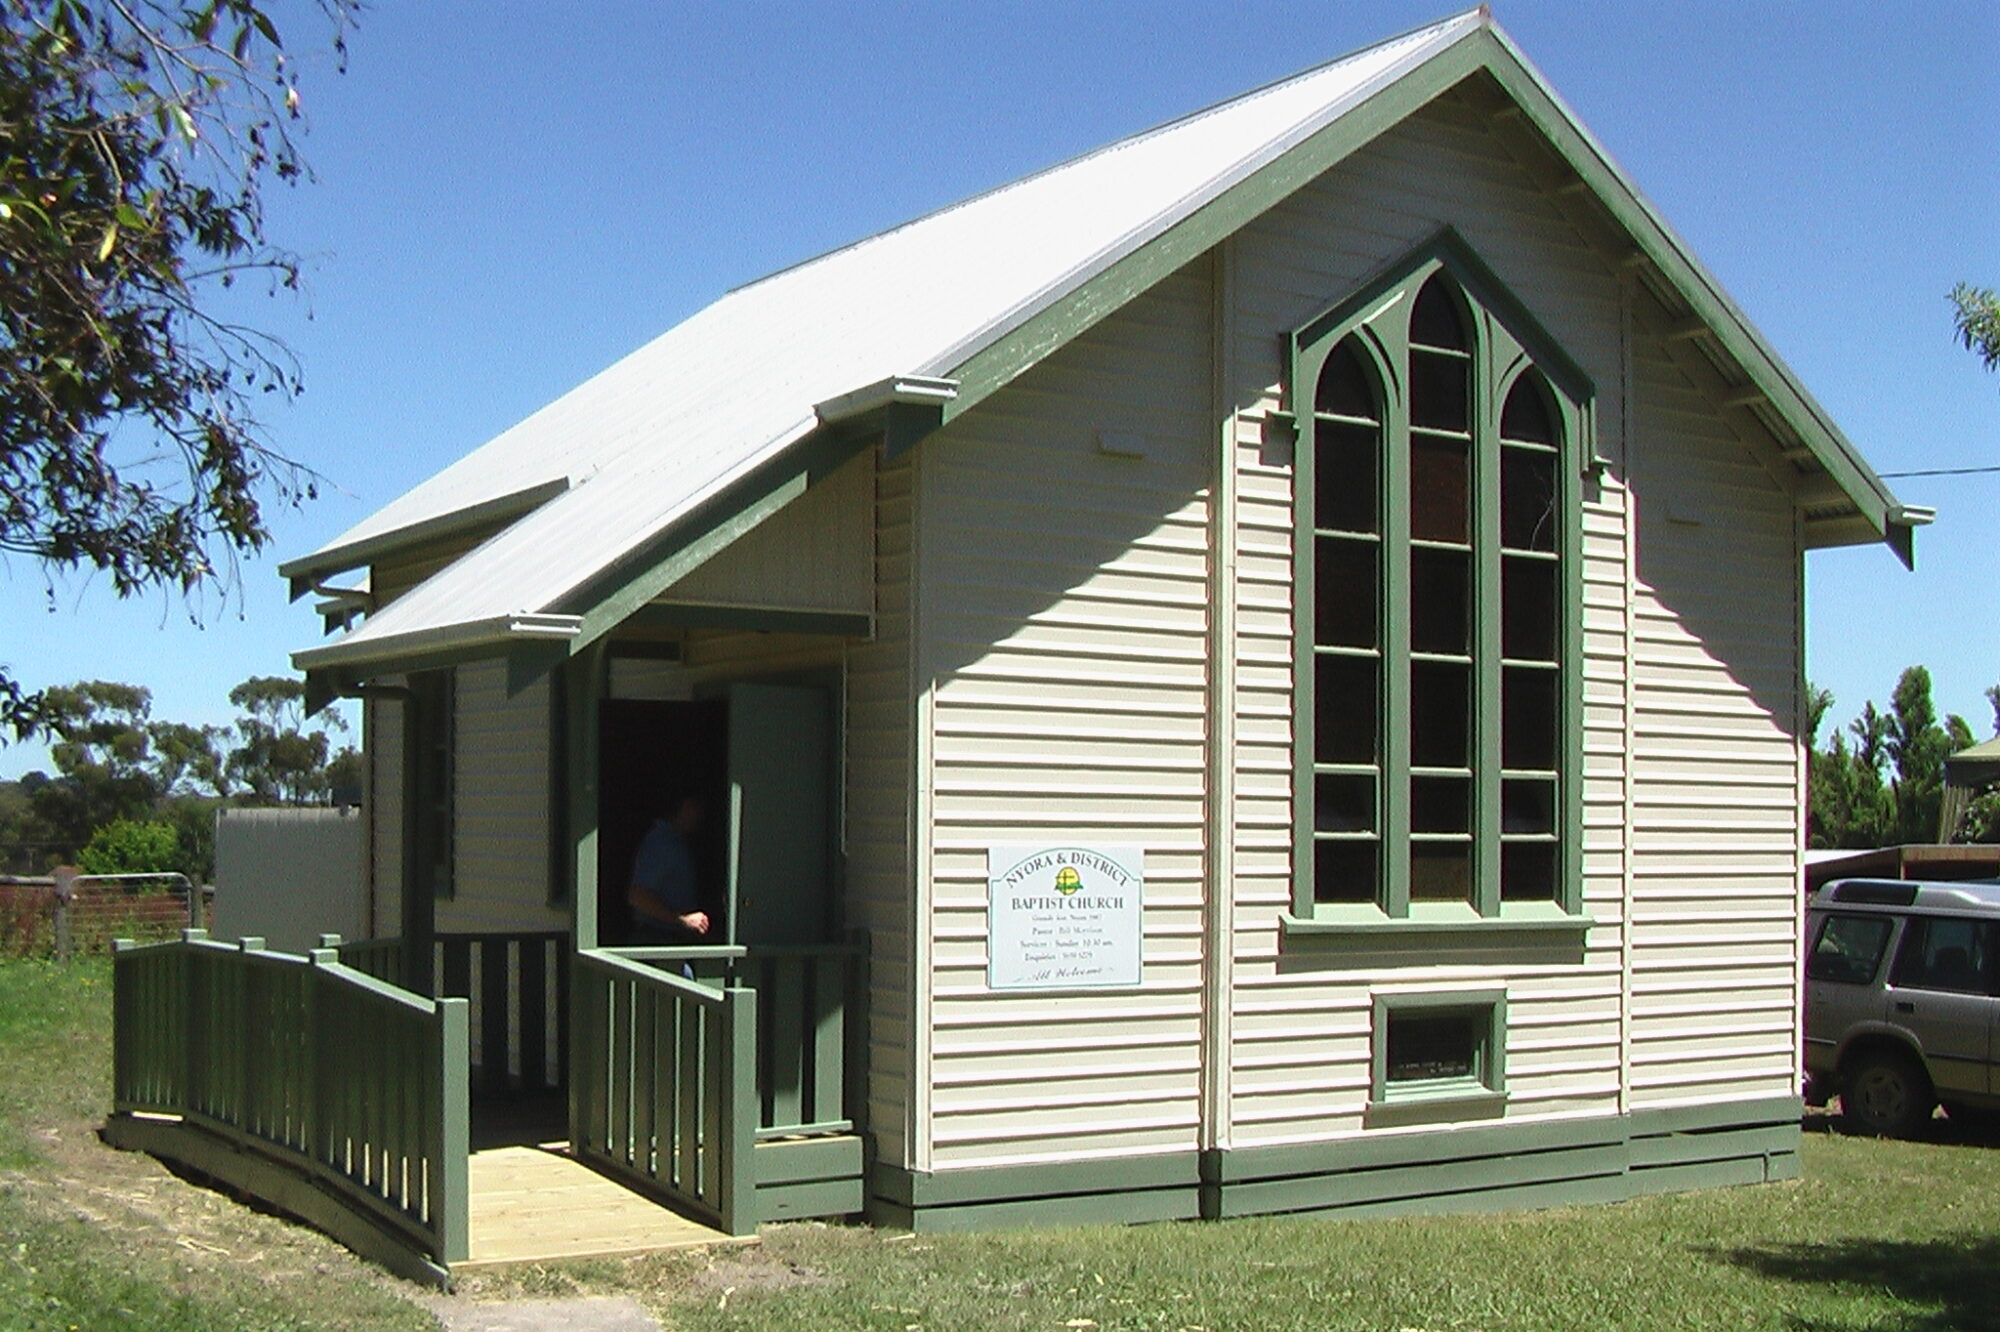 Nyora Baptist Church